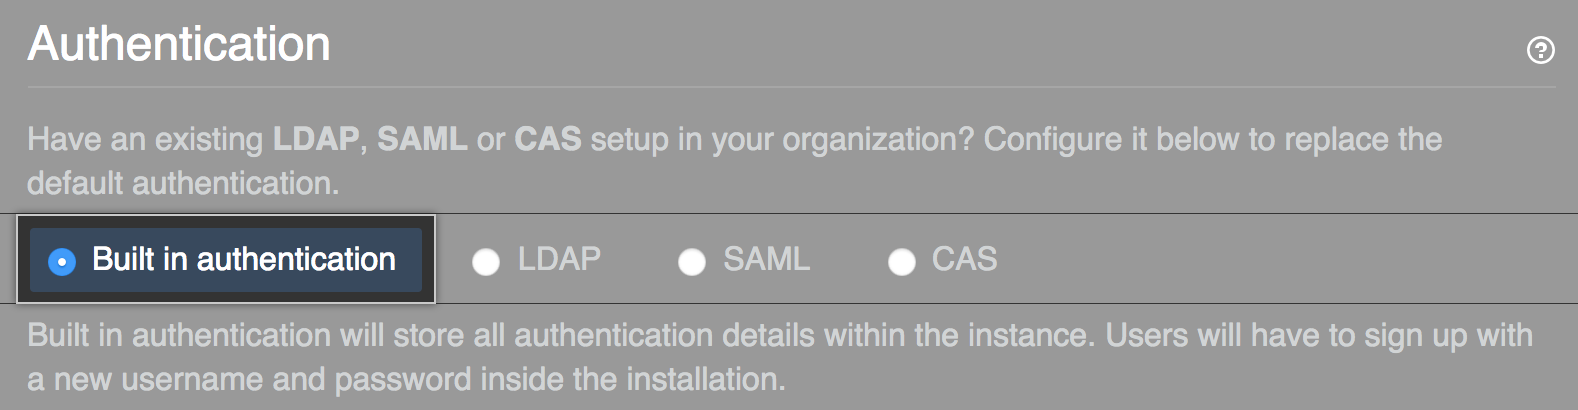 Select built-in authentication option